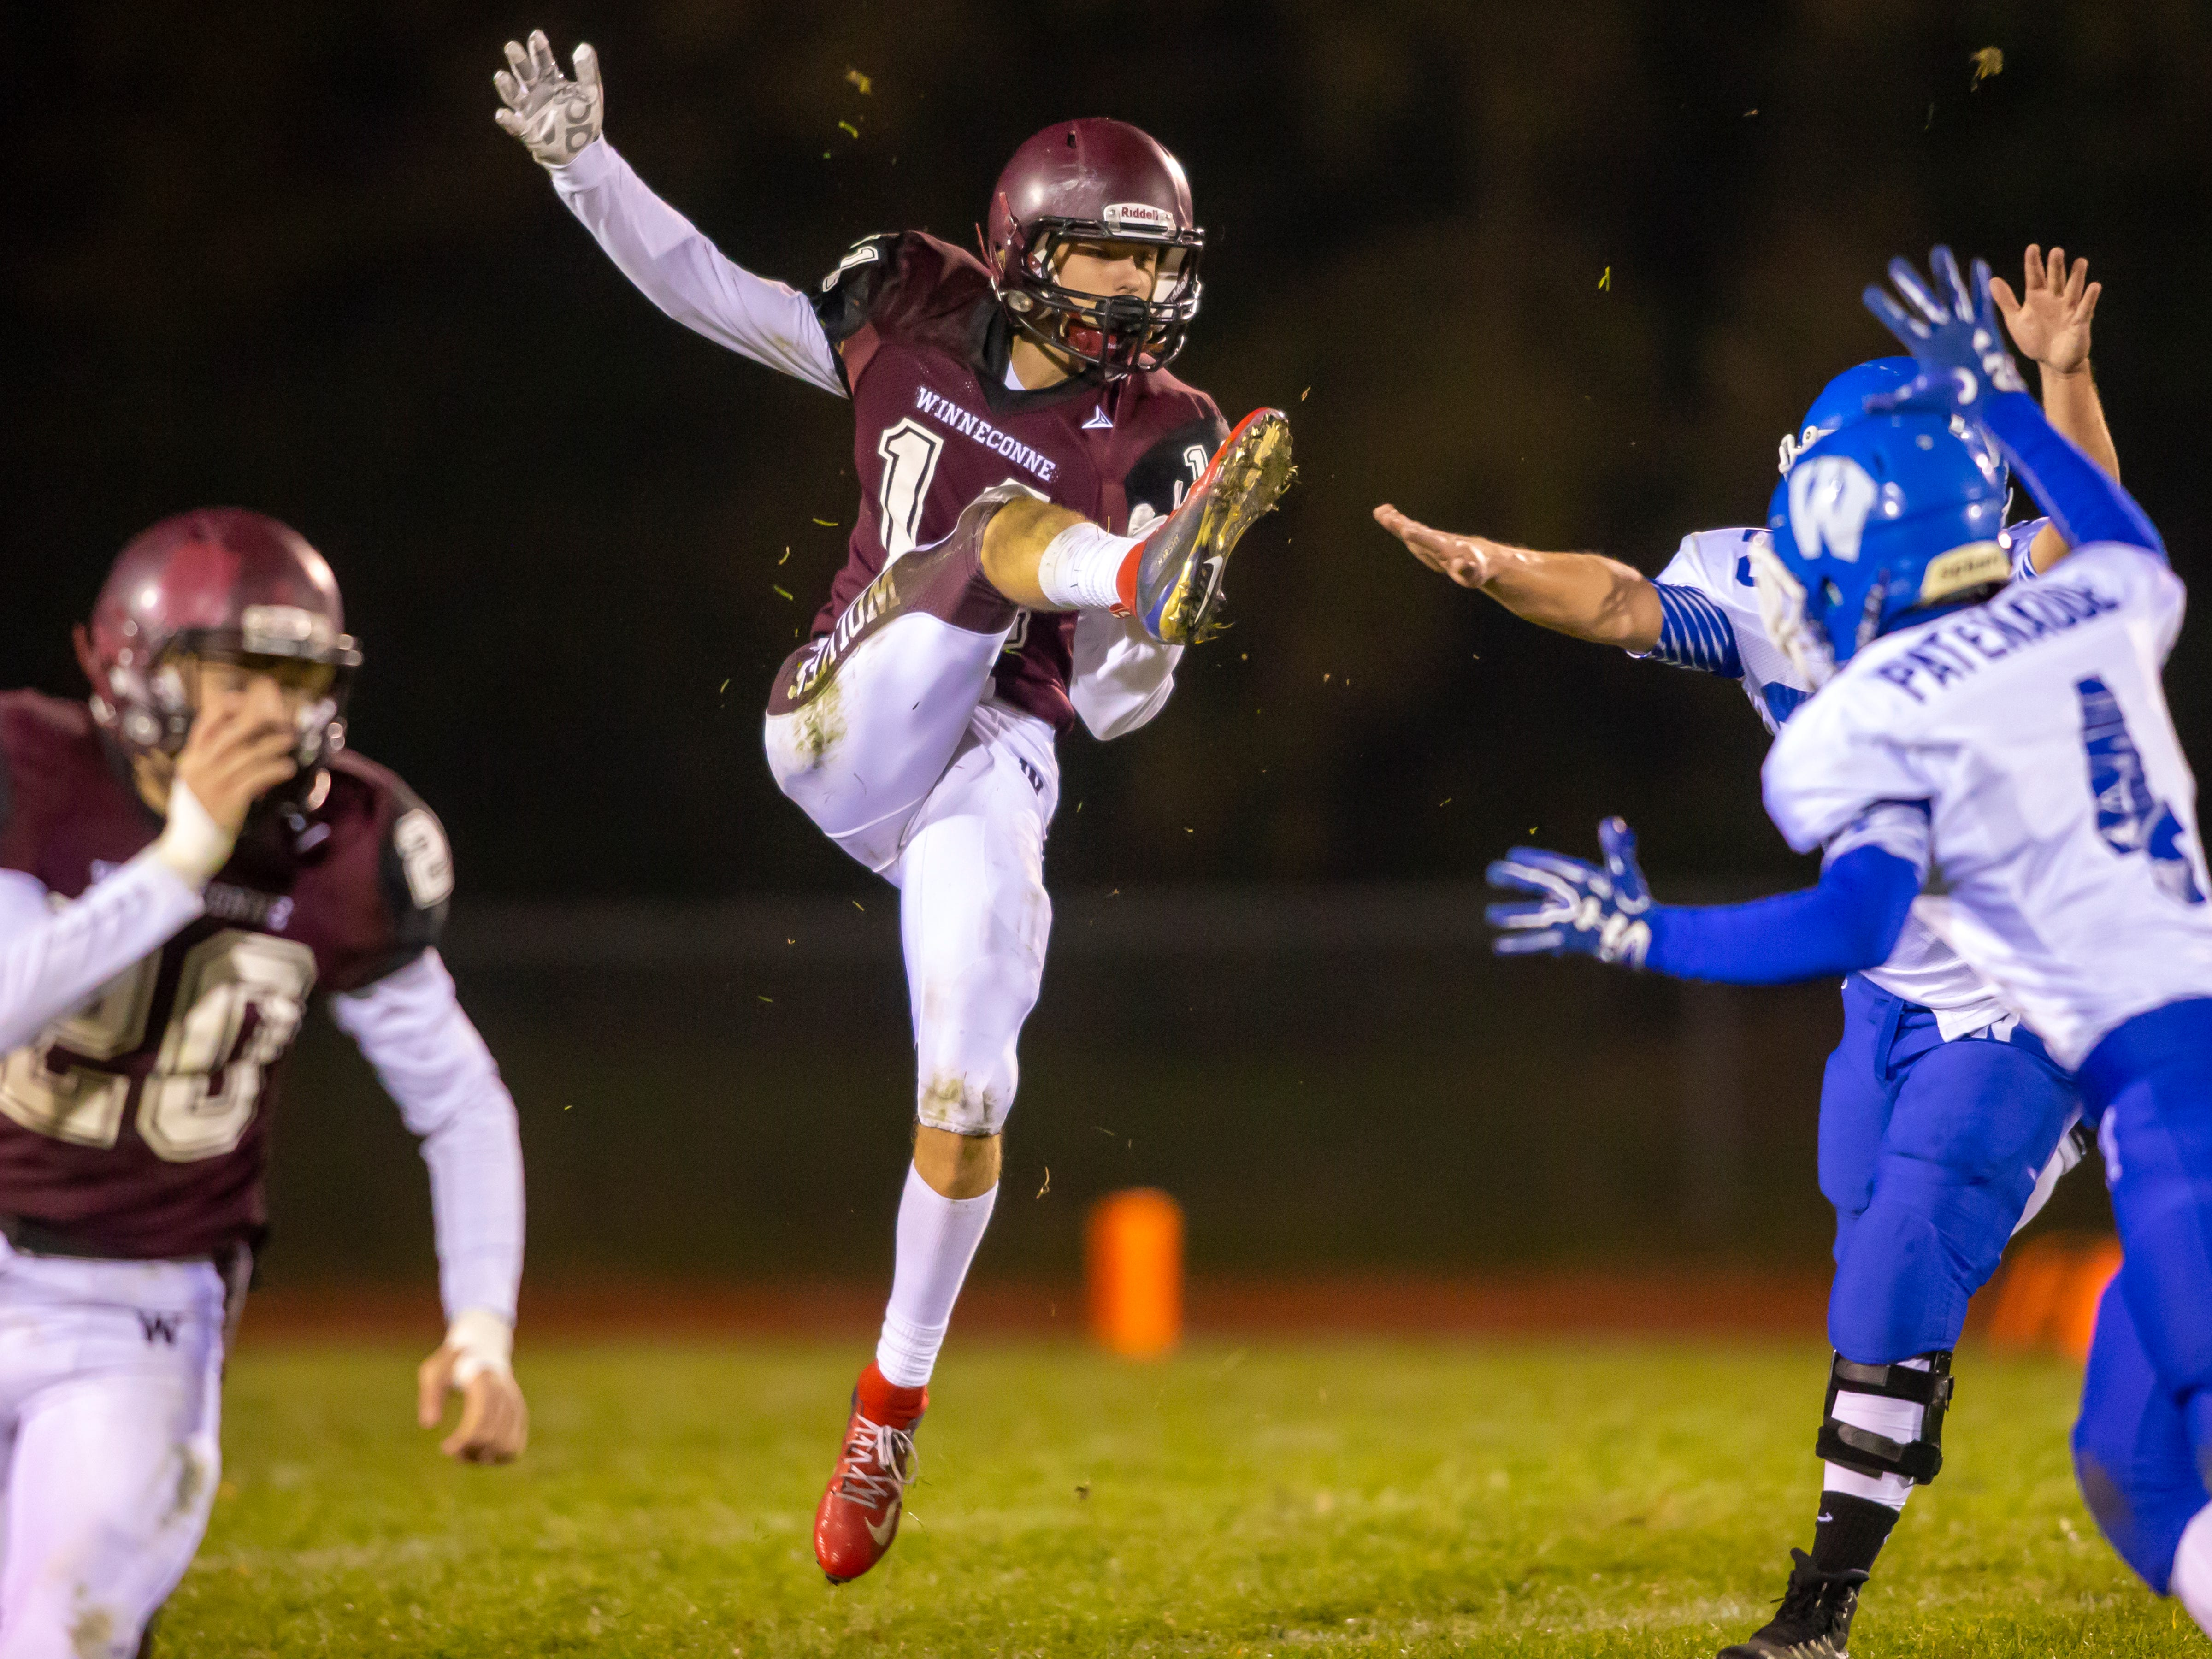 Winneconne's Evan Miller punts the ball to Wrightstown at Winneconne High School on Friday, October 26, 2018.